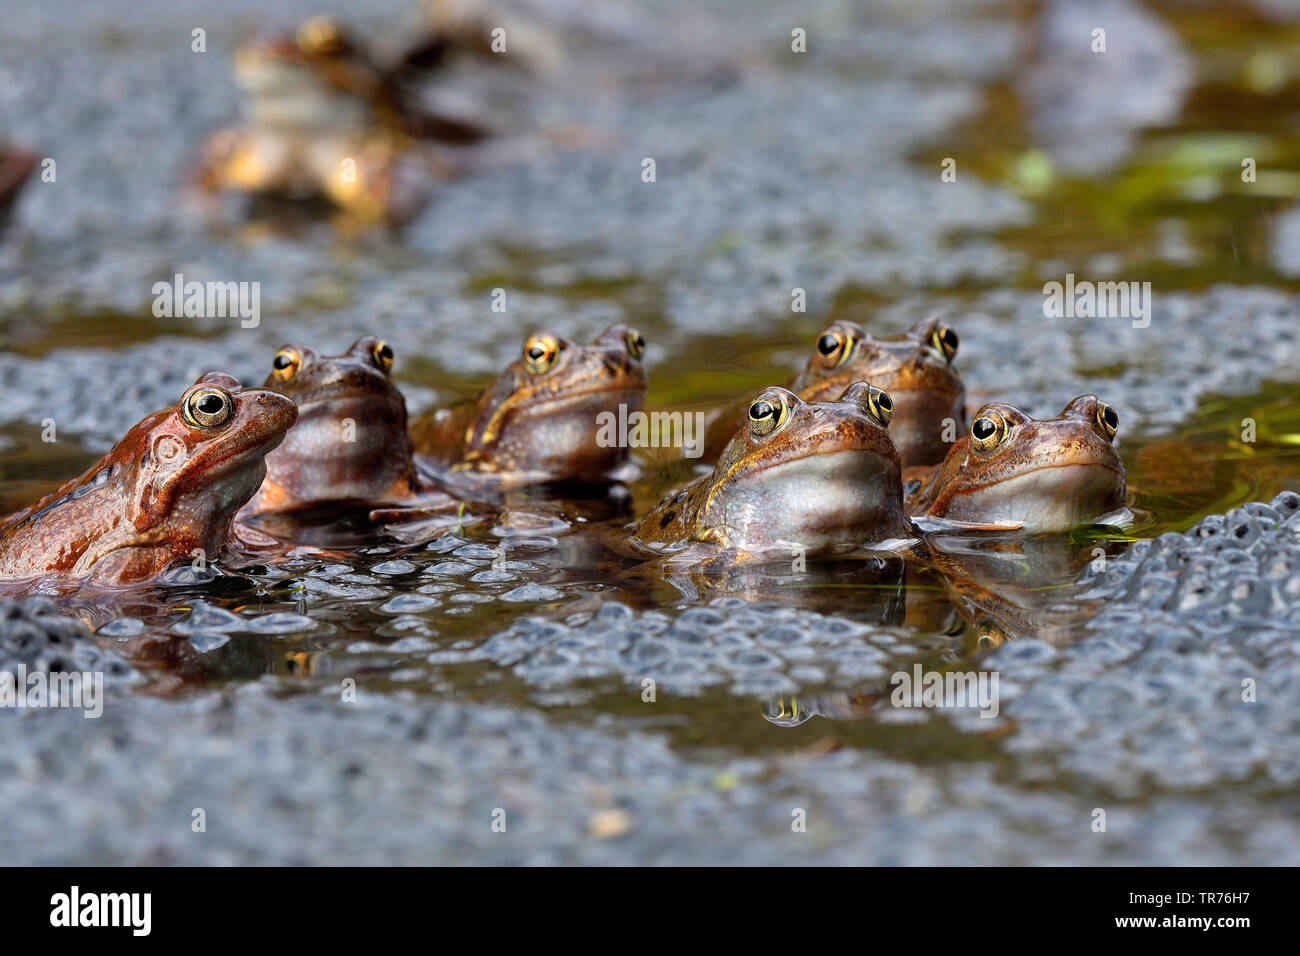 common frog, grass frog (Rana temporaria), group in water, Austria, Burgenland - Stock Image